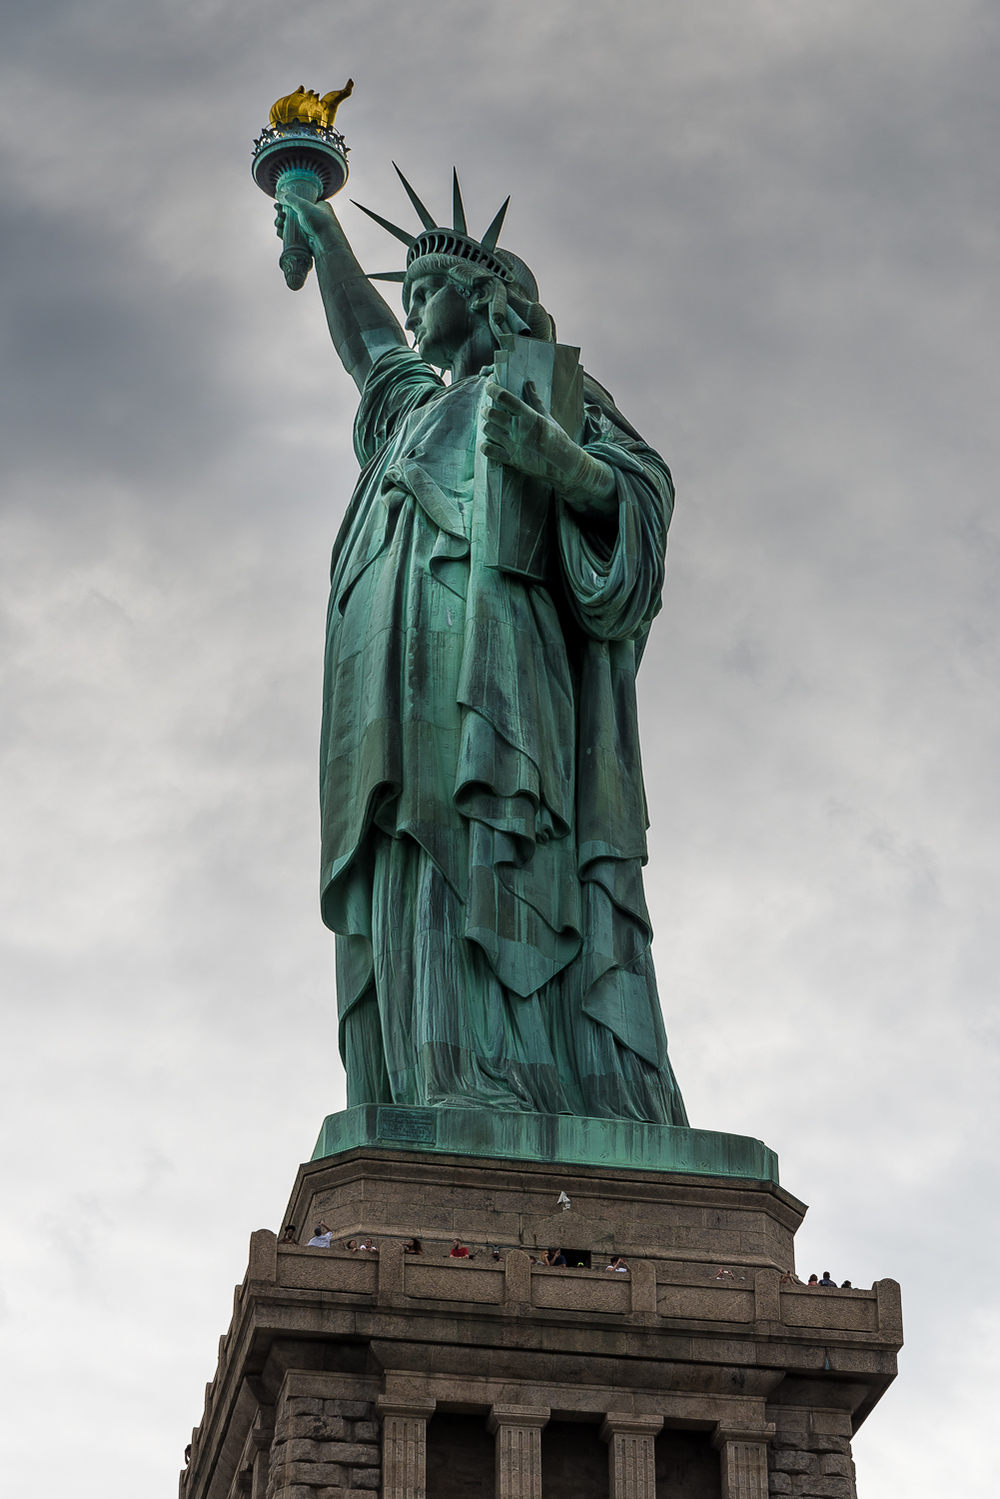 Statue of Liberty - July 19th, 2014